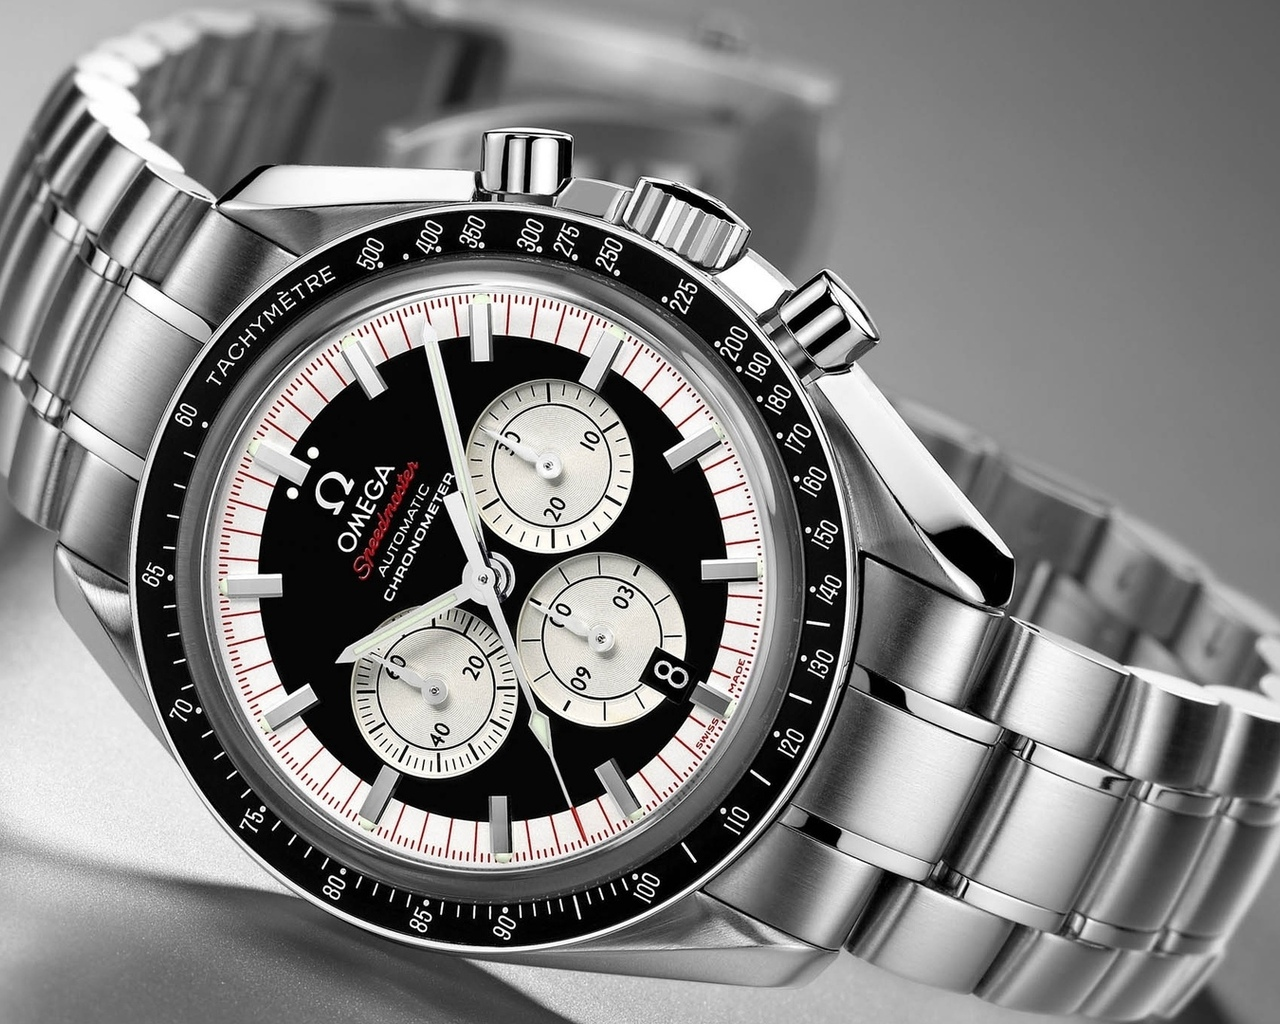 speedmaster, automatic, chronometer, omega, часы